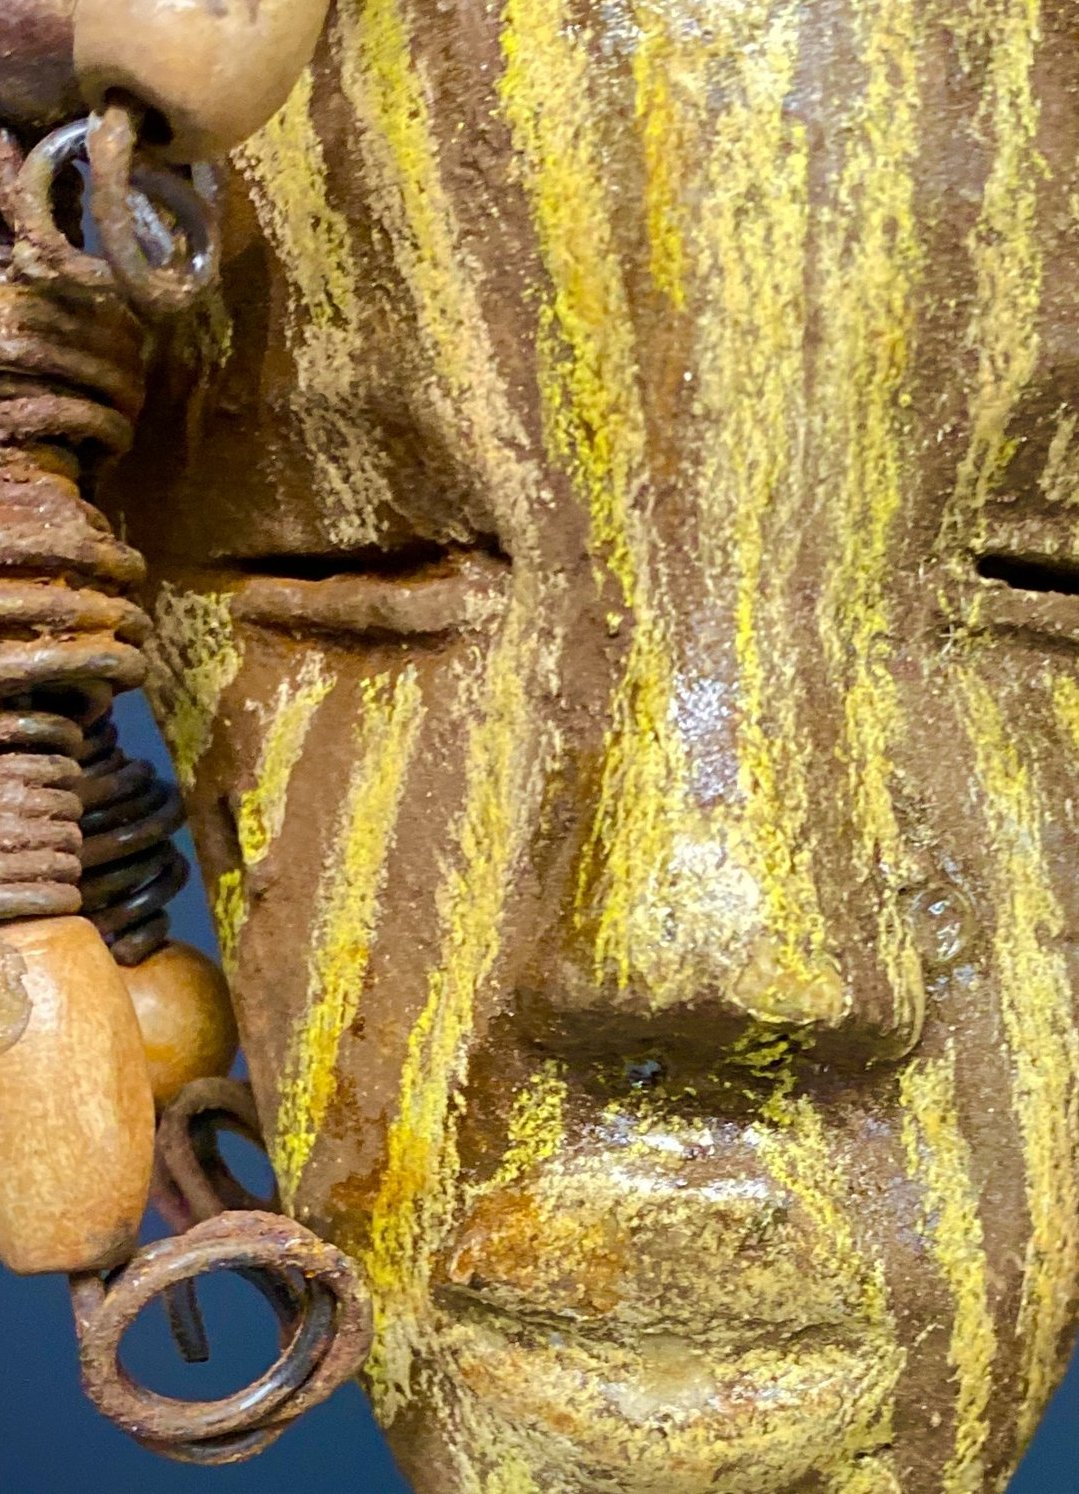 "I started making art soon after seeing authentic African artwork at the Smithsonian Museum of African Art. I was in total awe.  Kaba was inspired by my visit there.   Kaba has a two tone  striped complexion of earthy gold and brown. He is 5"" x 7"" and weighs 1 lbs. Kaba has over 10 wooden beads. He has over 10 feet of coiled 16 gauge wire hair. If for some reason Kaba does not fit in your home, send him back for a full refund!"